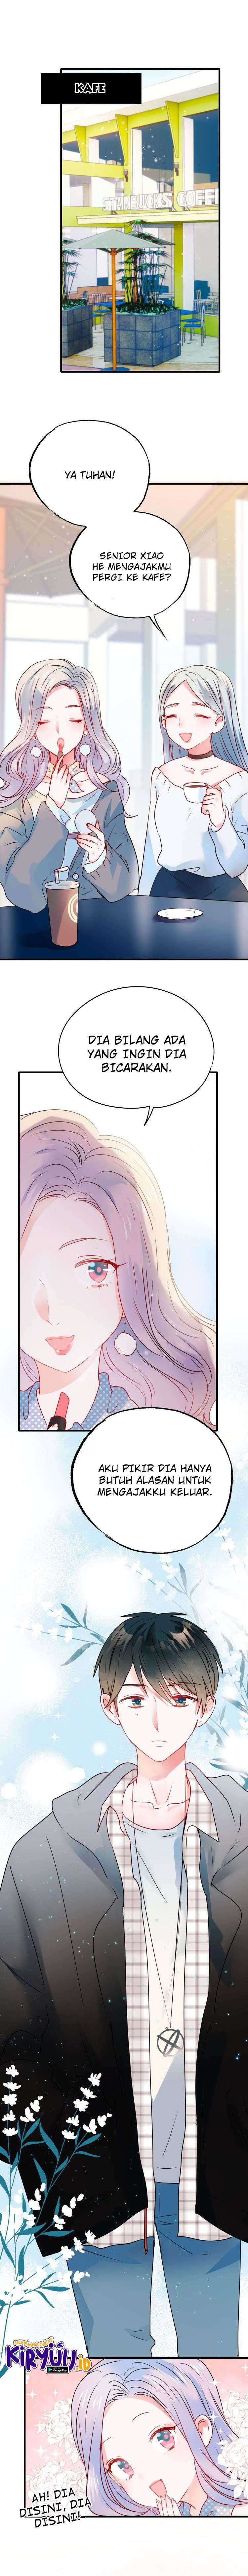 To Be A Winner Chapter 18